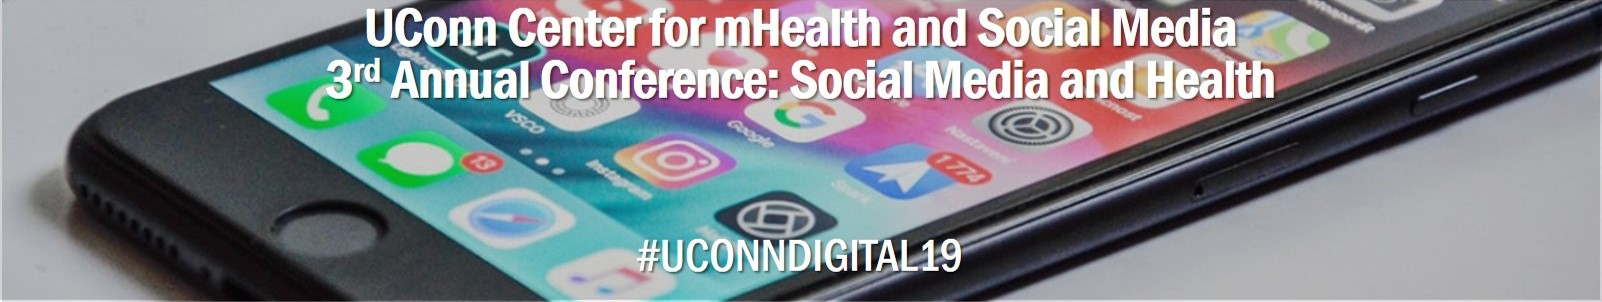 The UConn Center for mHealth and Social Media 3rd Annual Conference: Social Media and Health